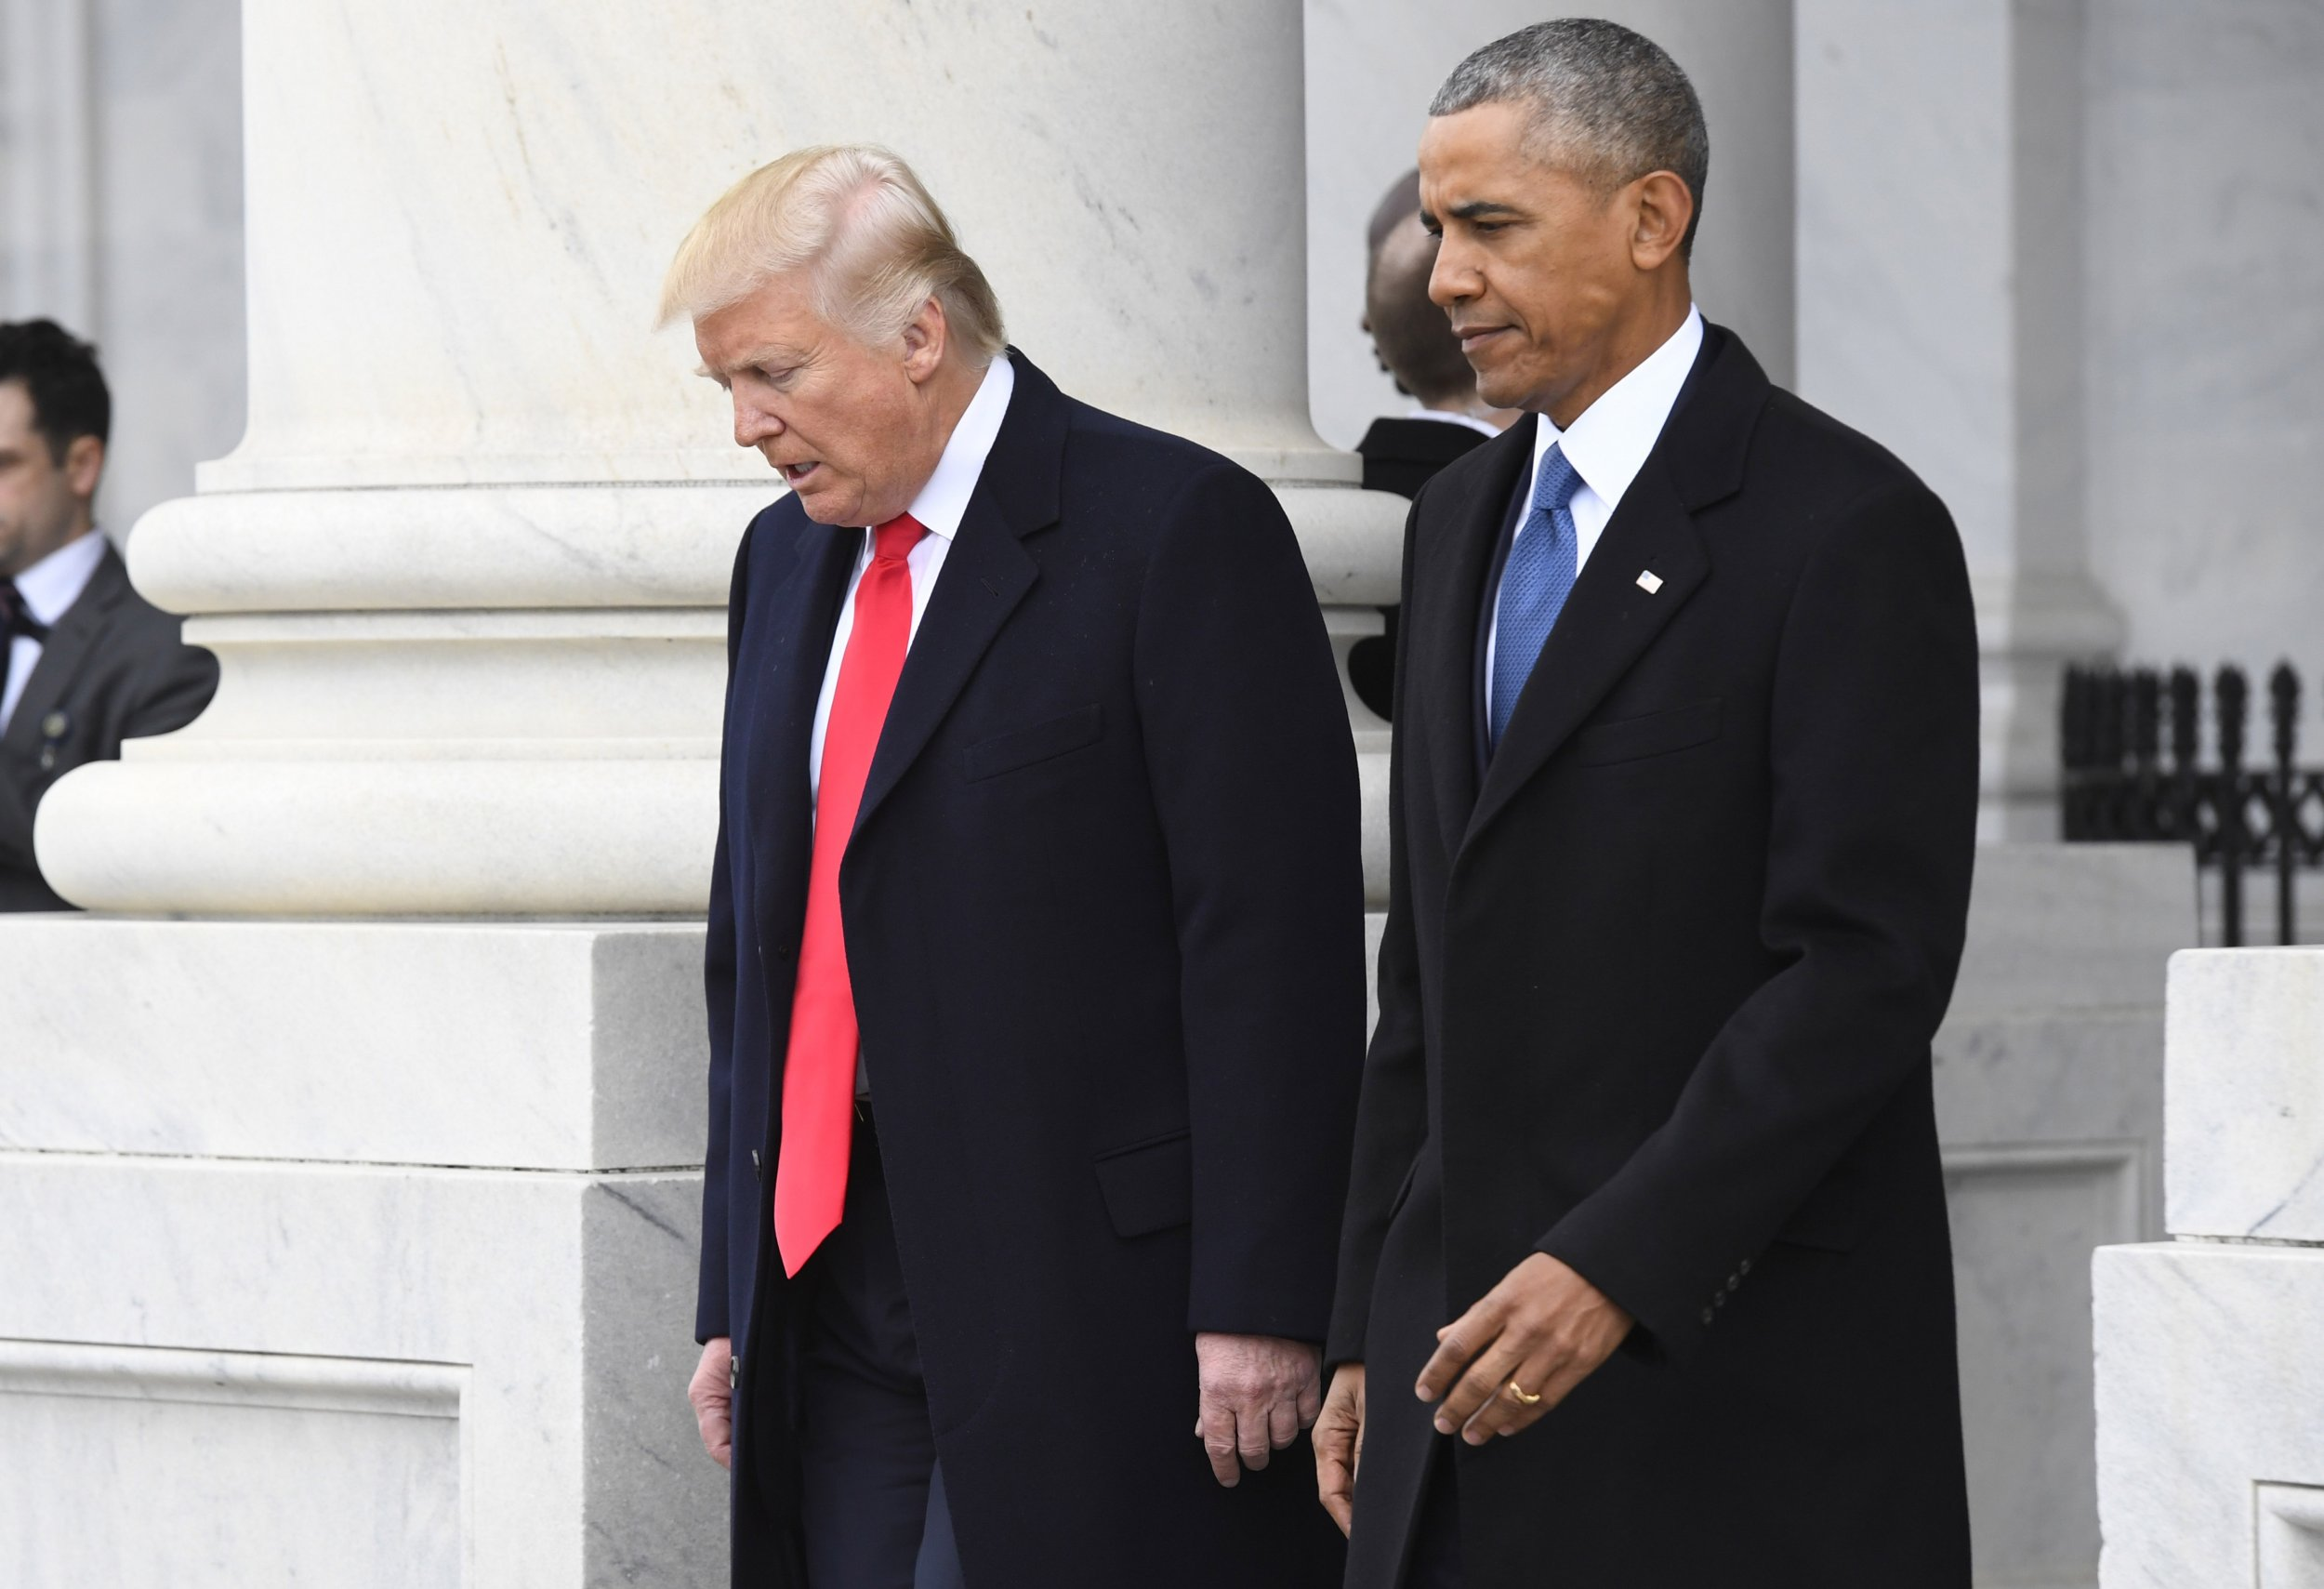 Obama and Trump walking